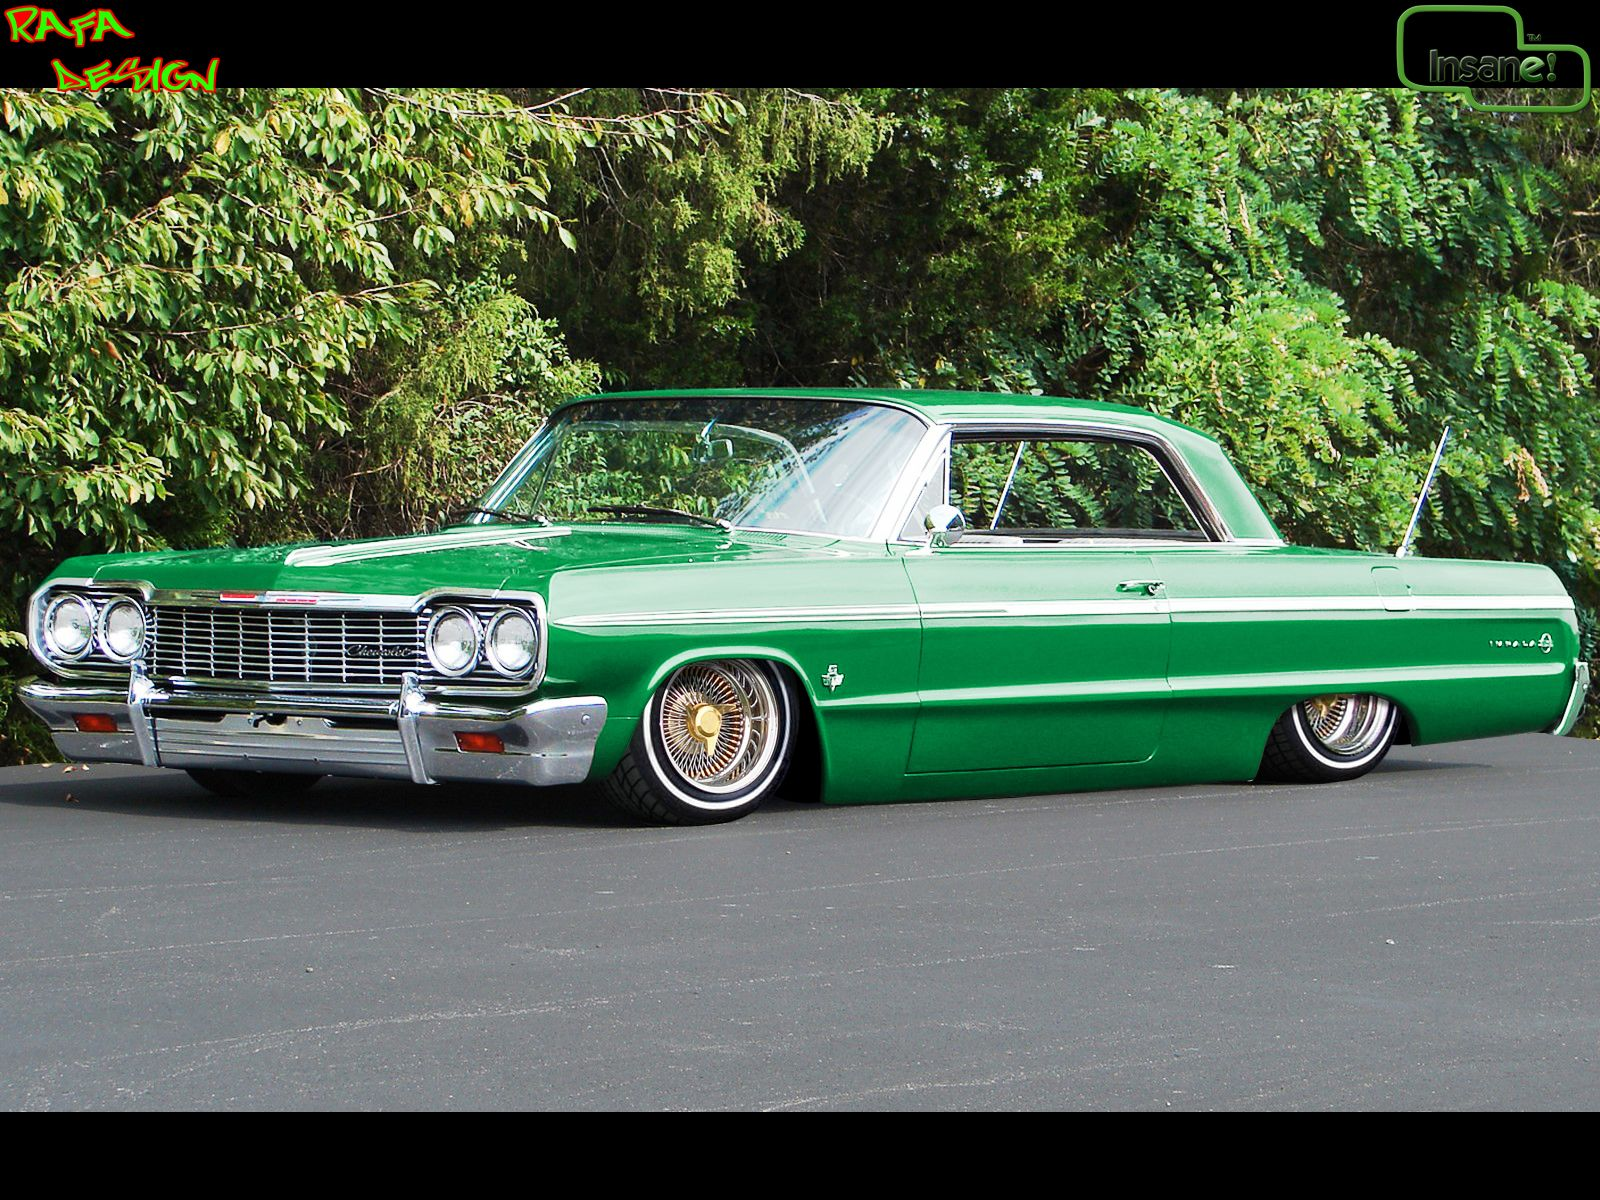 This Bad A Here Is A 1964 Chevy Impala Pancaked My Style Of A Ride Lowriders Dream Cars Lowrider Cars